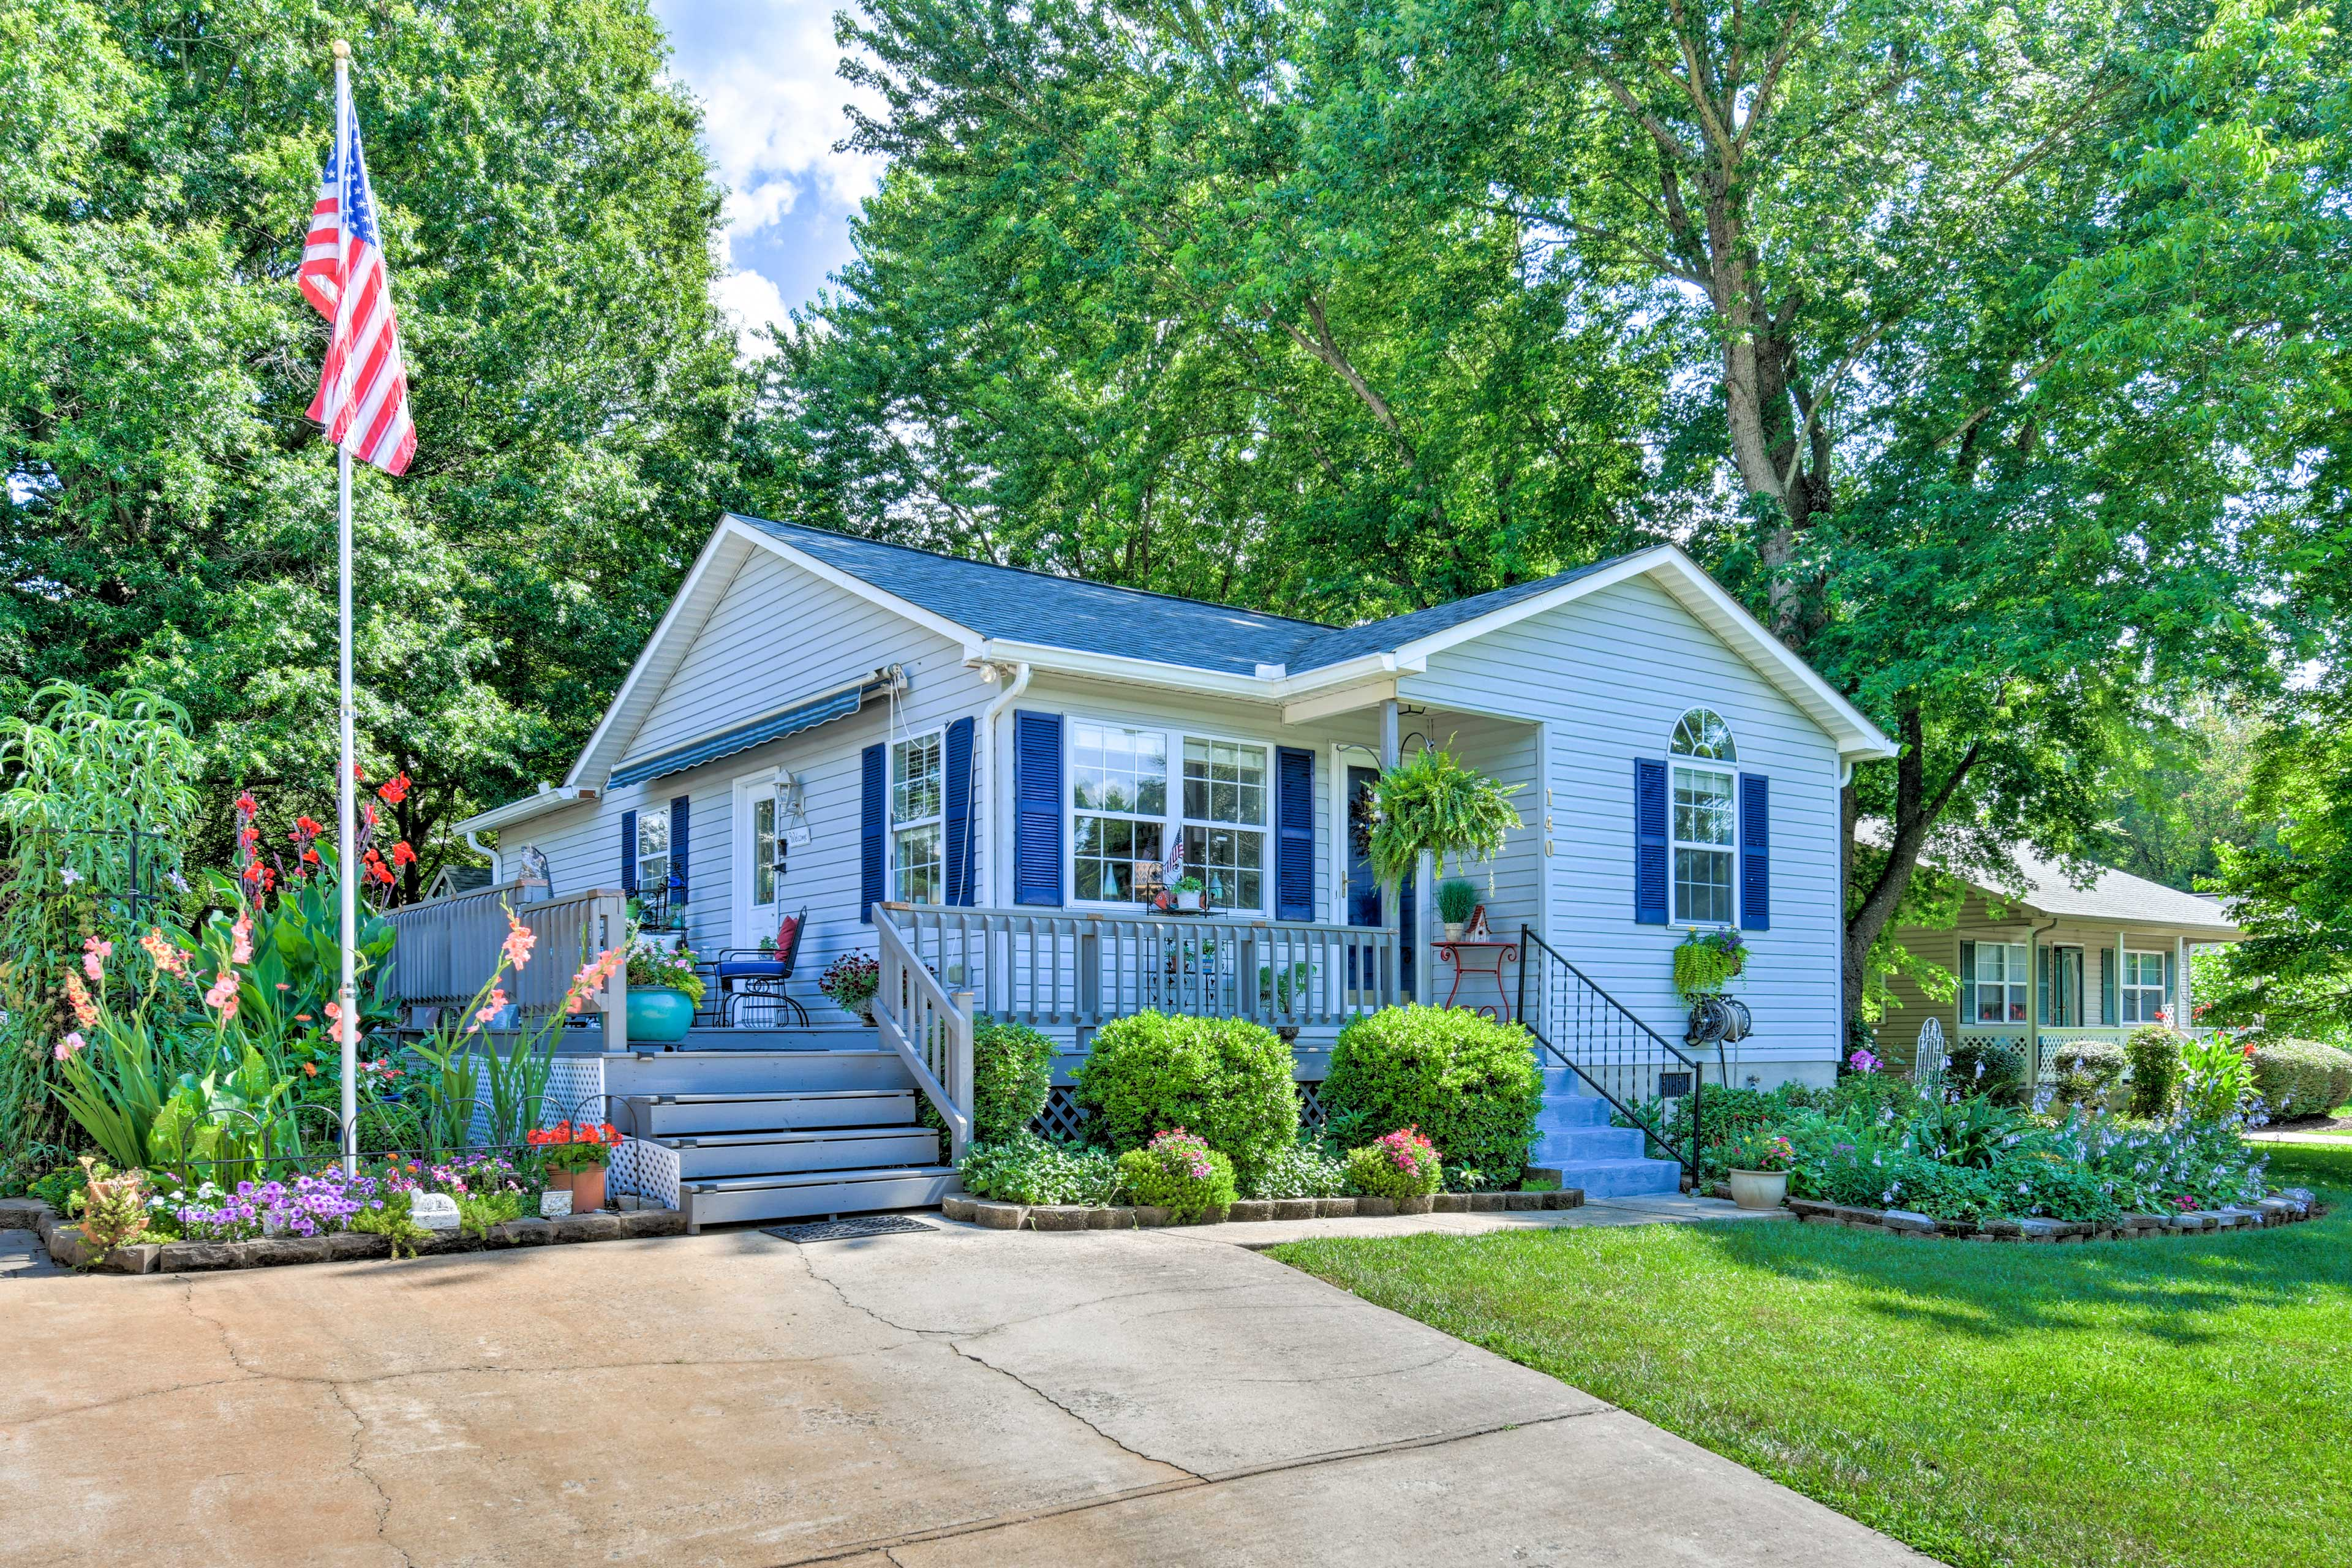 This garden paradise welcomes up to 4 guests with 2 bedrooms & 2 bathrooms.